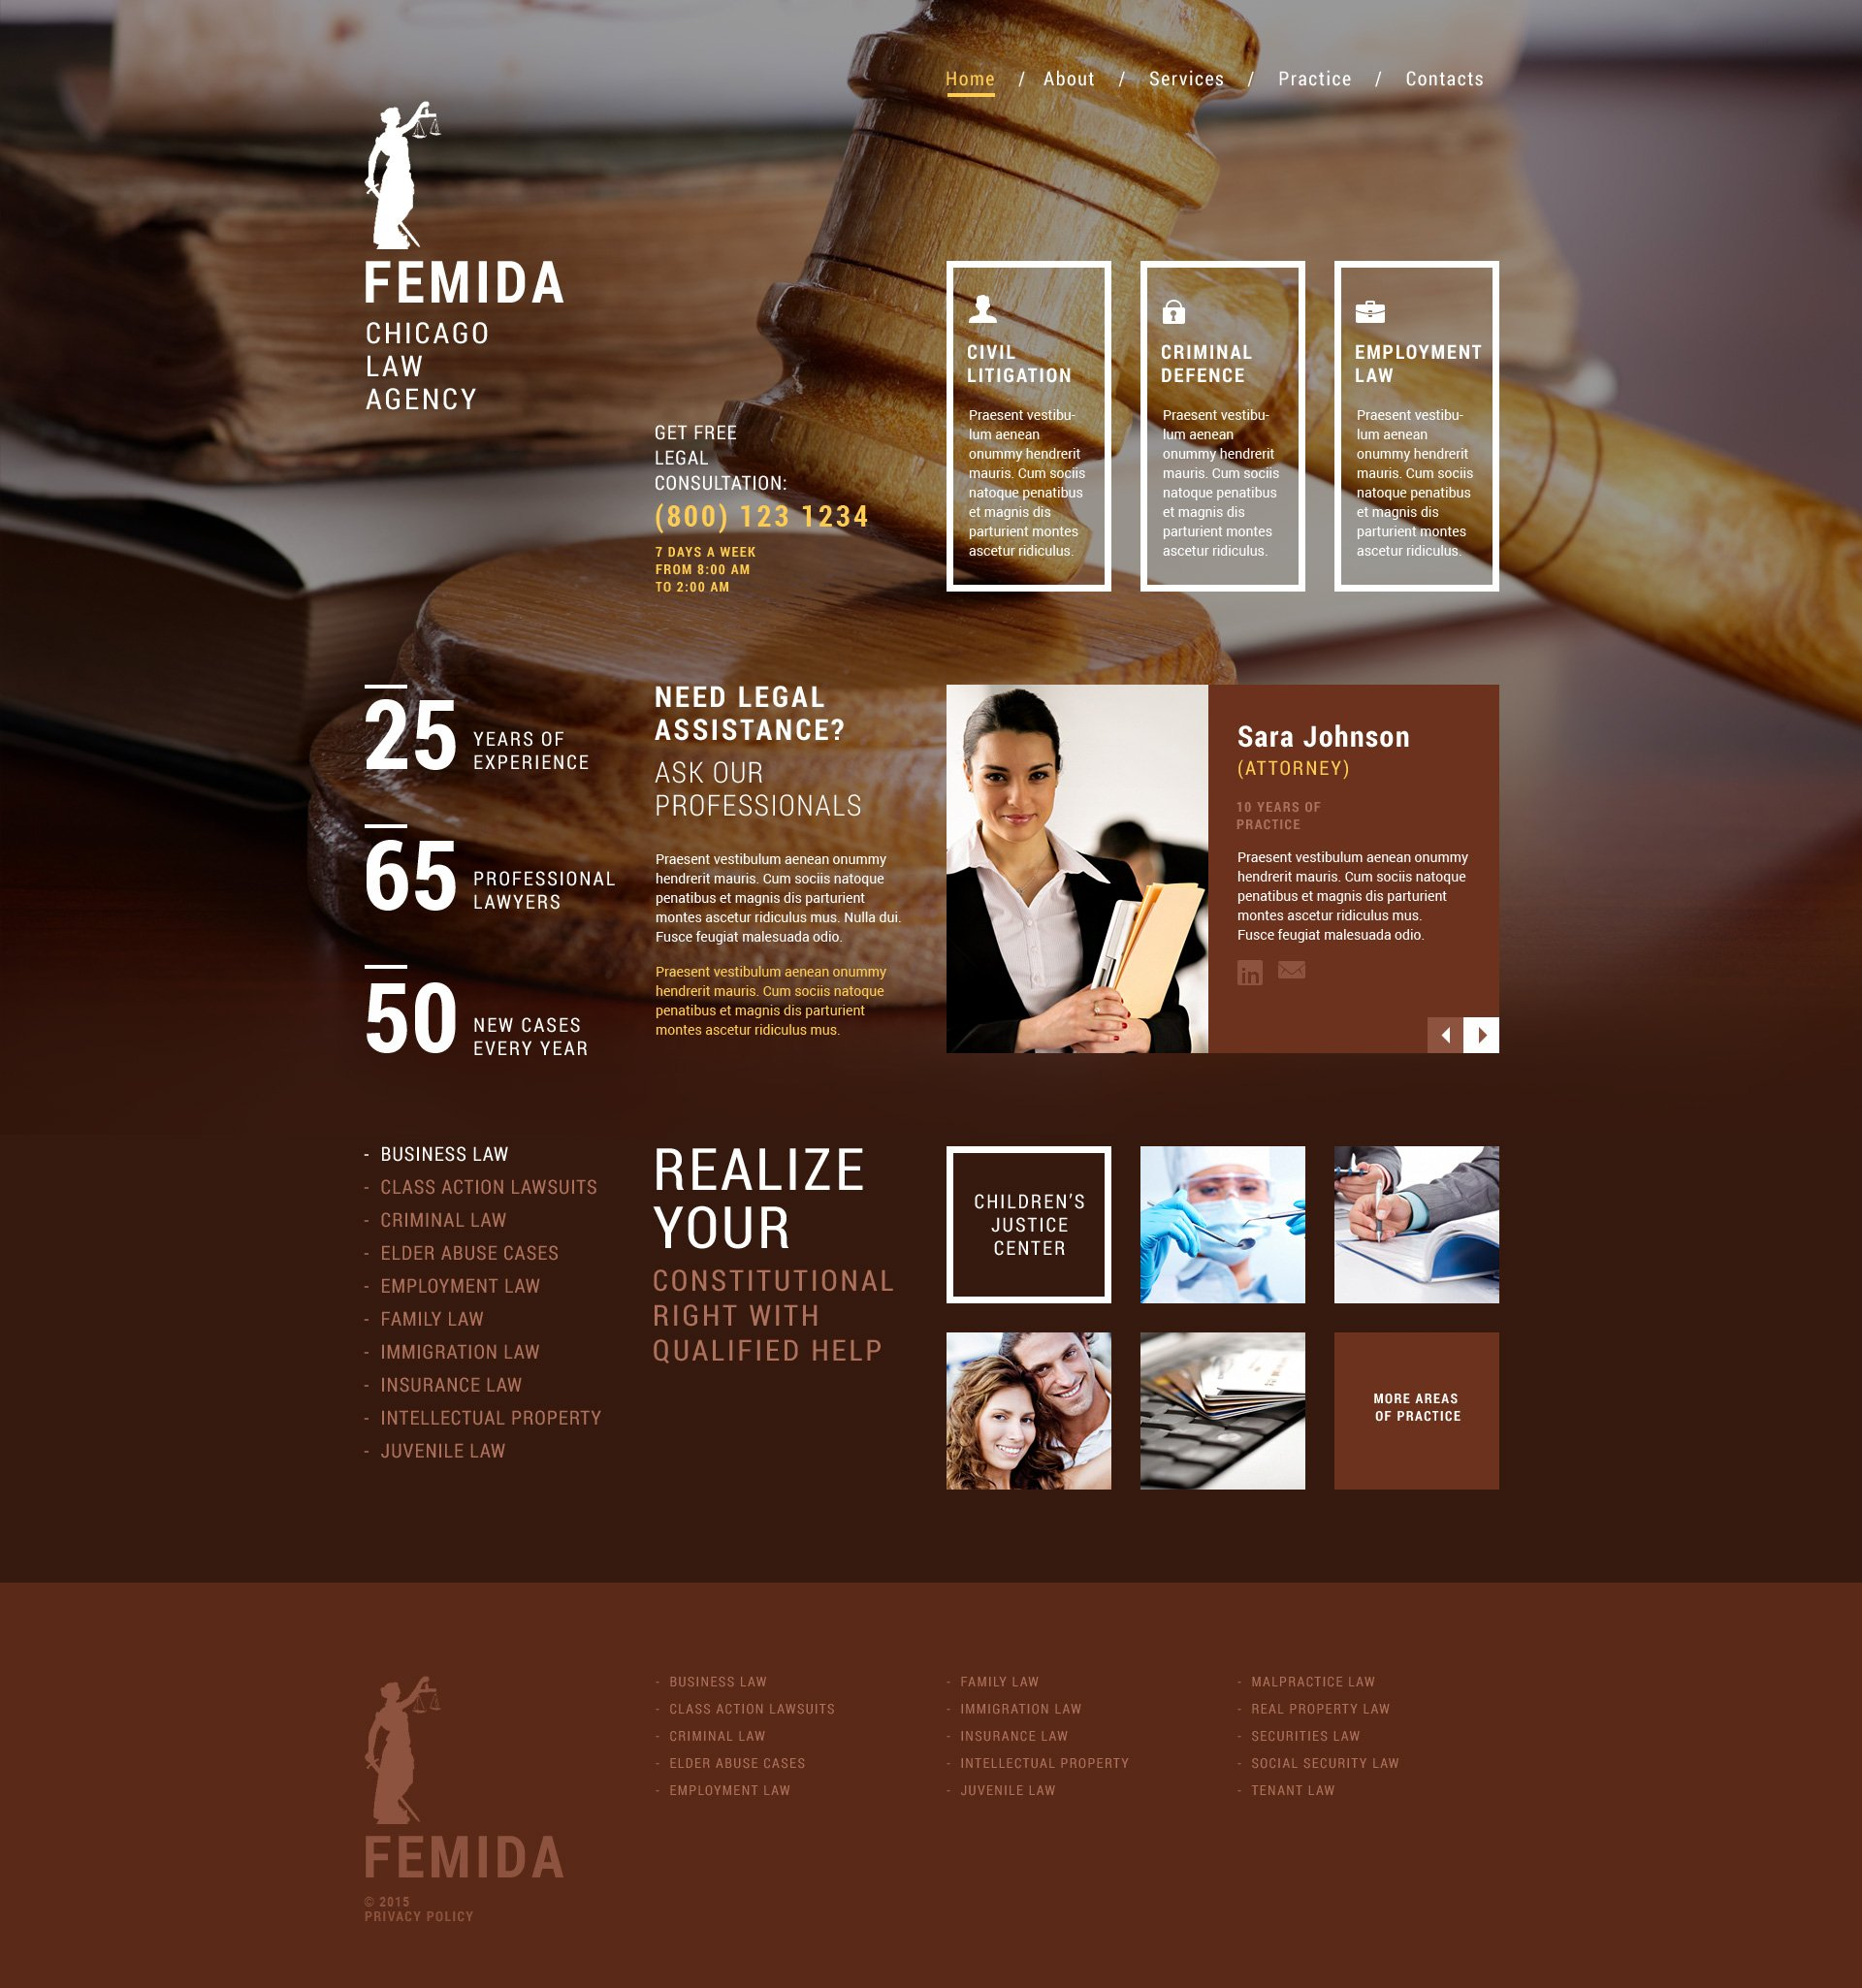 Law Firm Templates | TemplateMonster